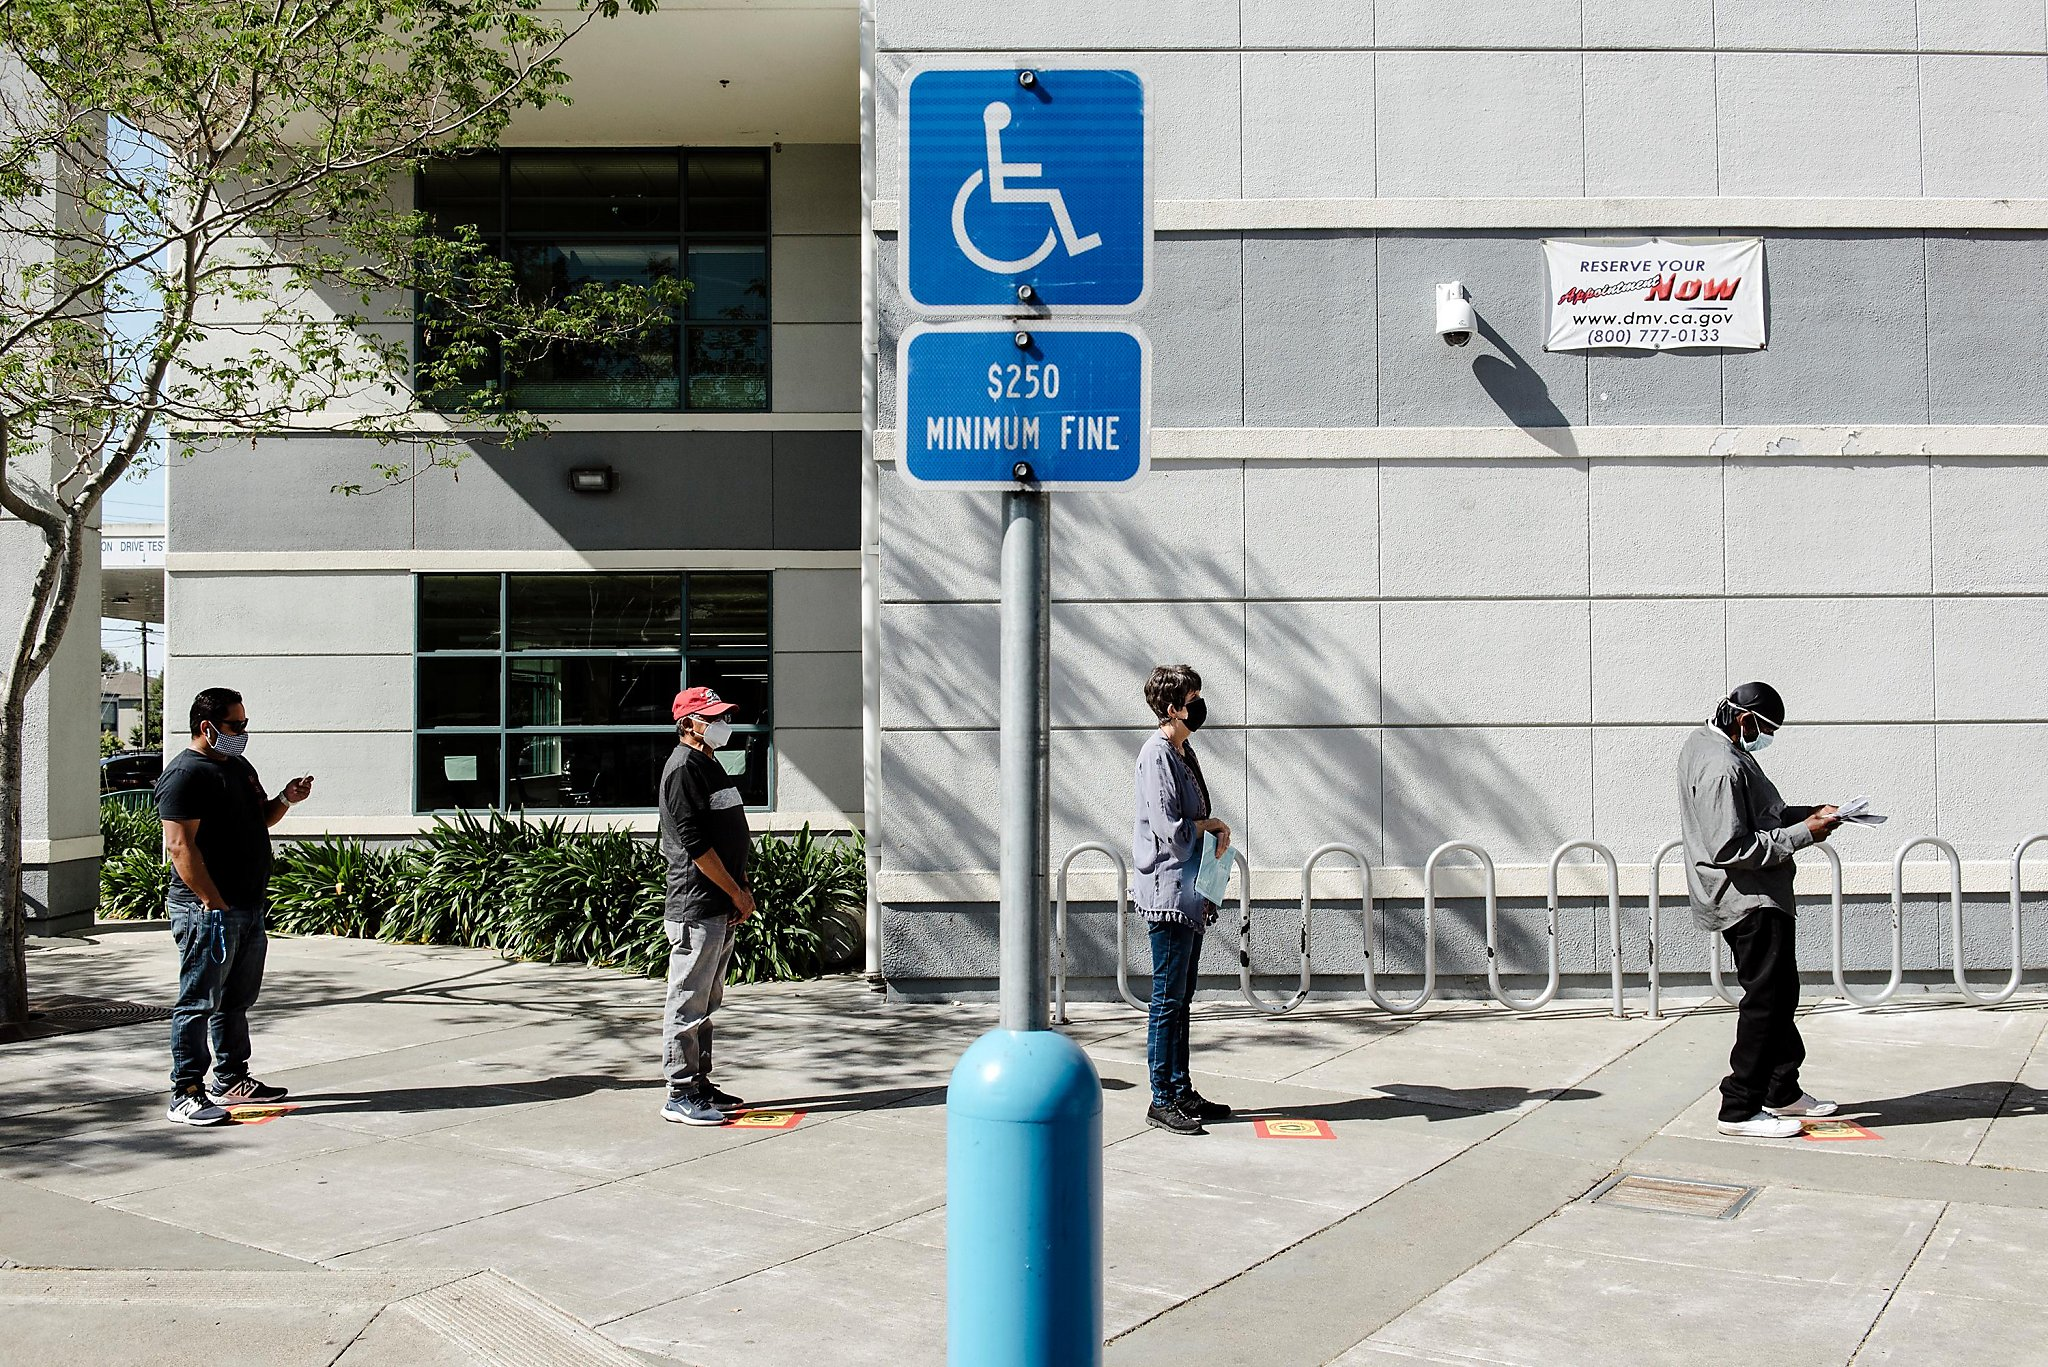 California drivers 70 and older allowed to skip DMV visit and renew licenses online